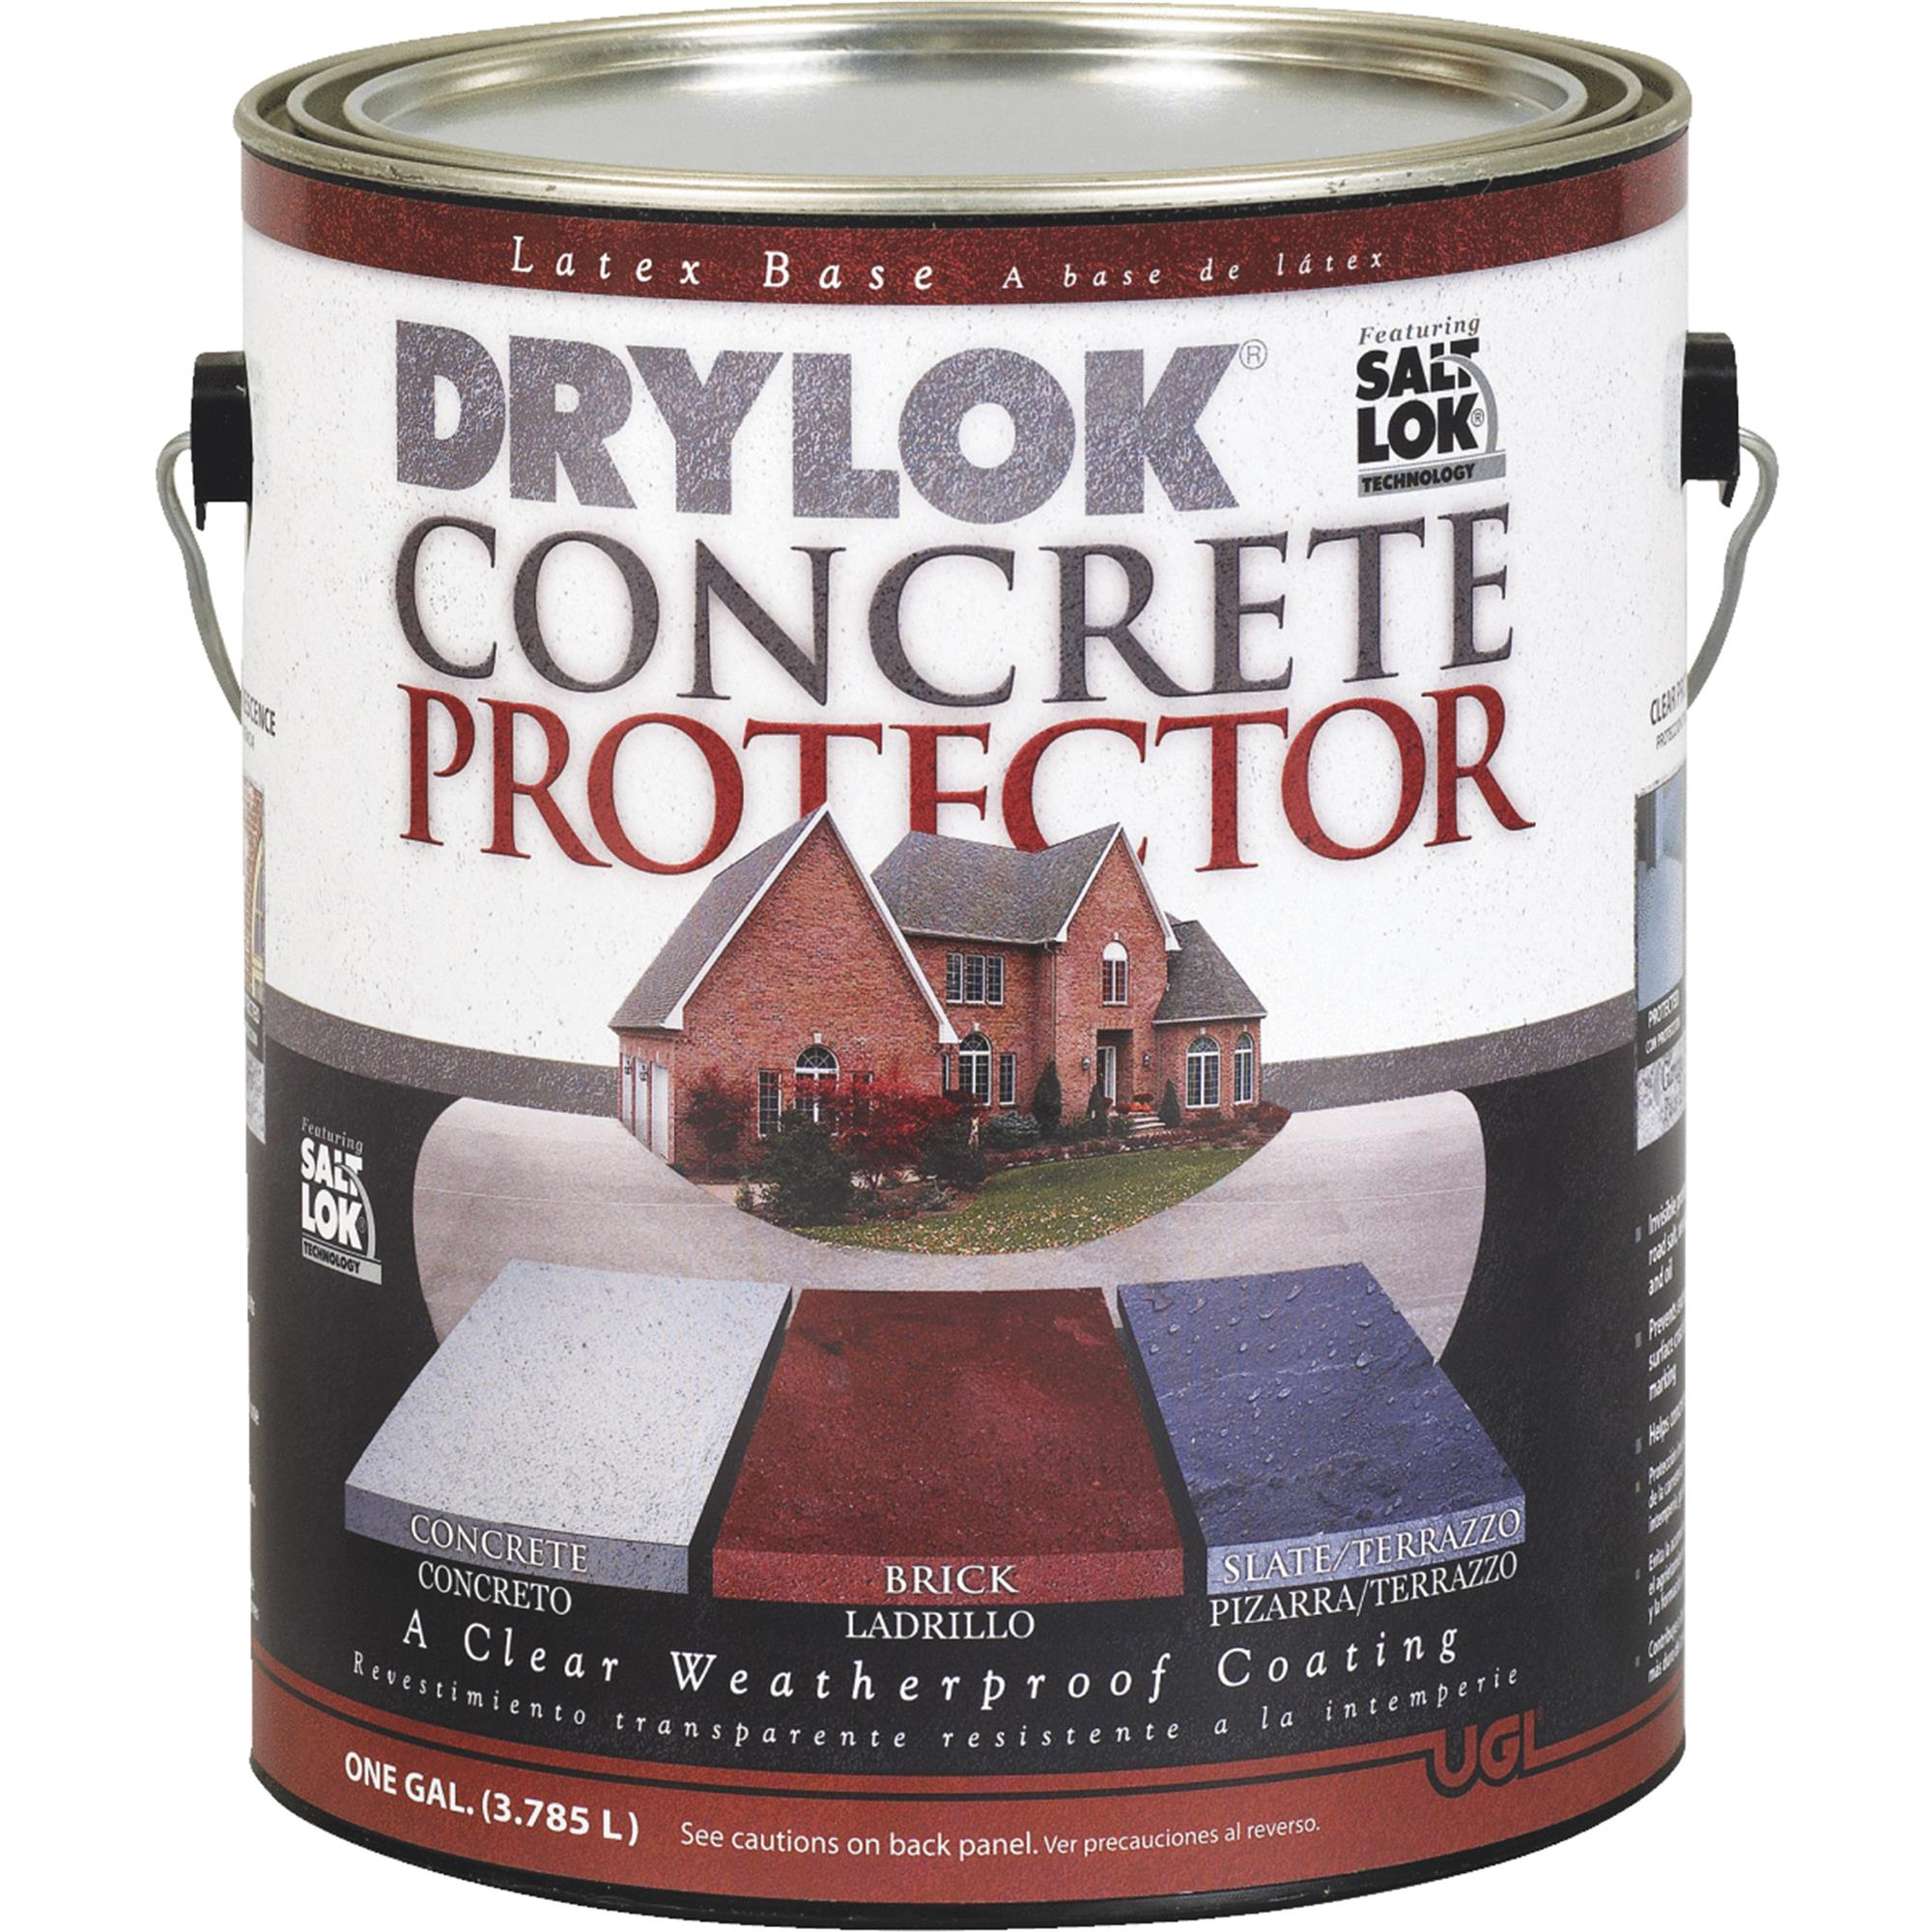 Drylok Concrete Protector With Saltlok Concrete Sealer by United Gilsonite Lab